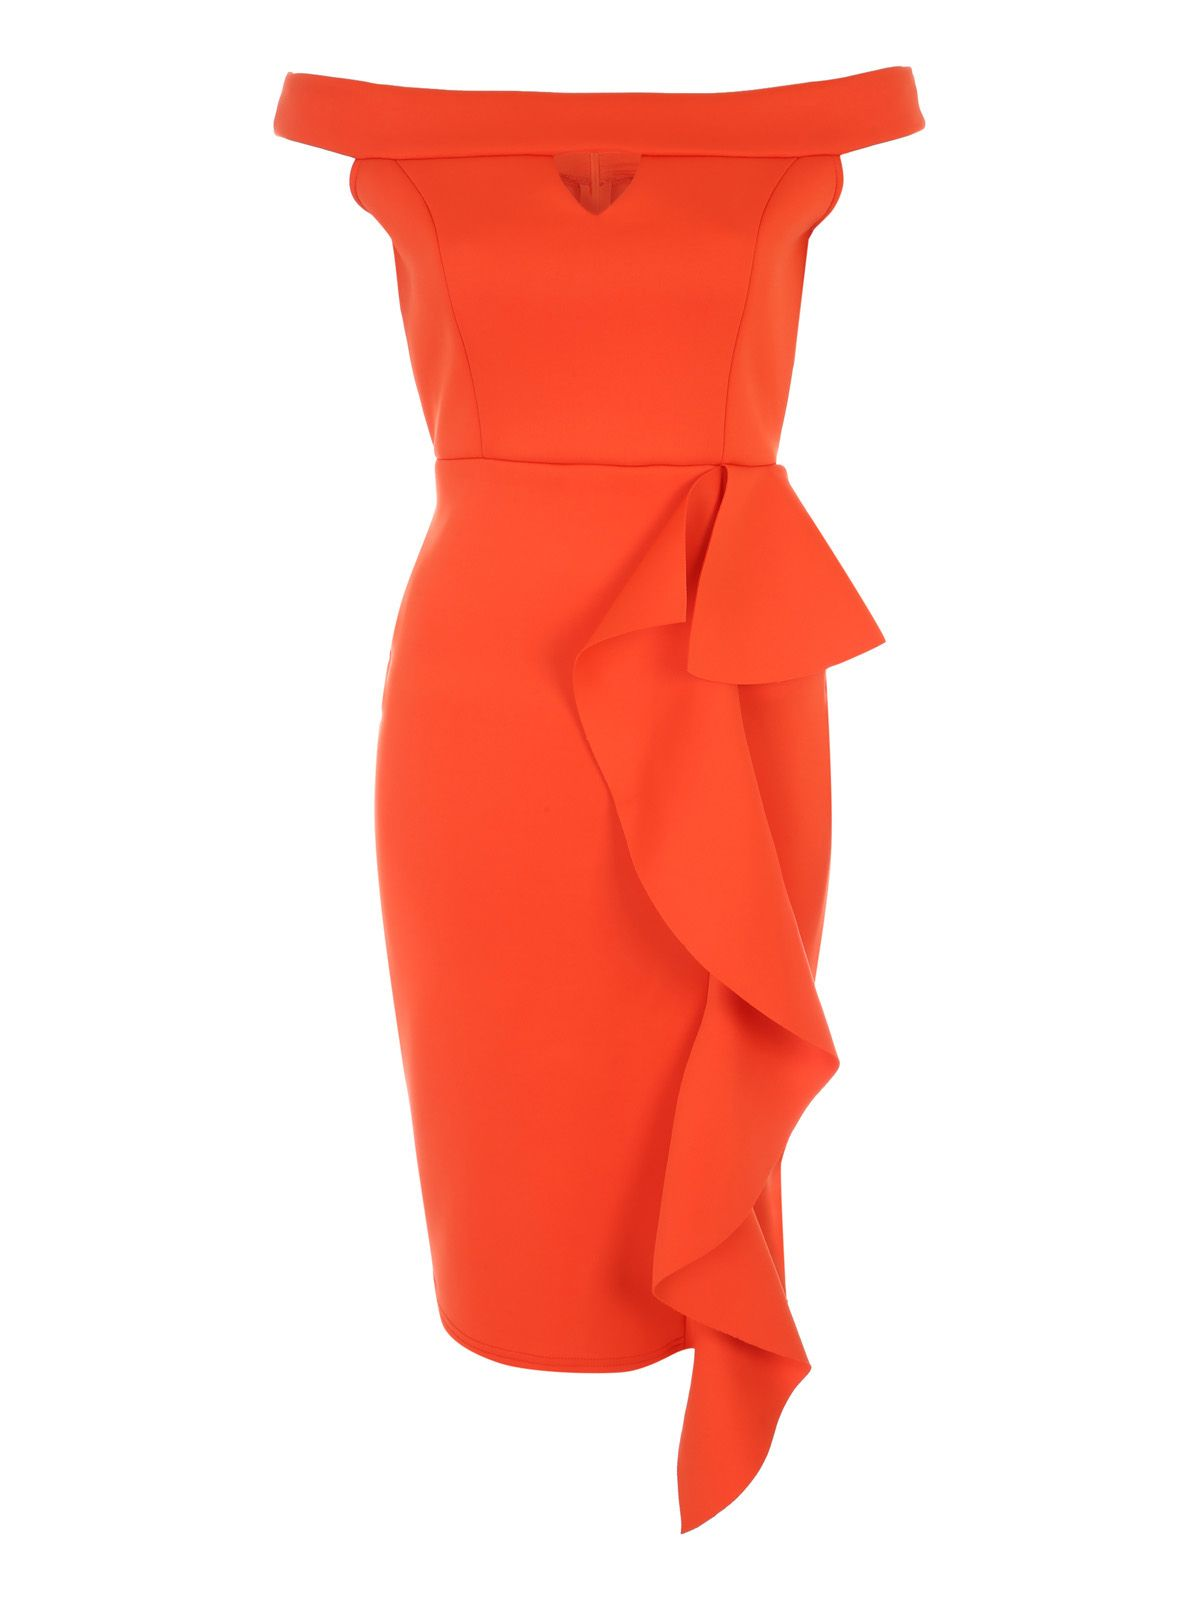 Jane Norman Dresses - Buy Your Jane Norman Dress | House of Fraser